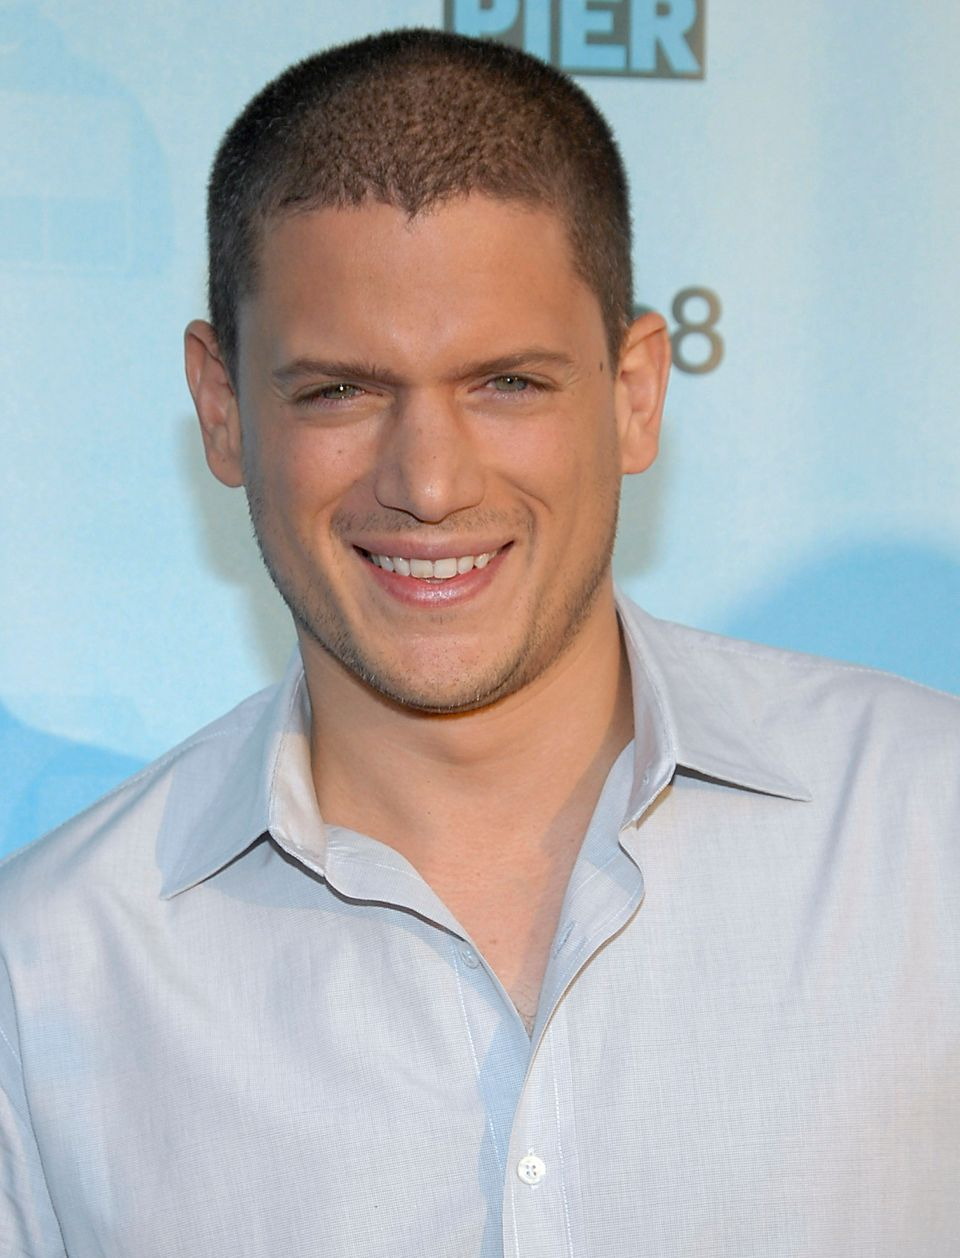 """Prison Break"" star Wentworth Miller <a href=""https://www.huffpost.com/entry/wentworth-miller-comes-out-gay_n_3792389?utm_hp_"